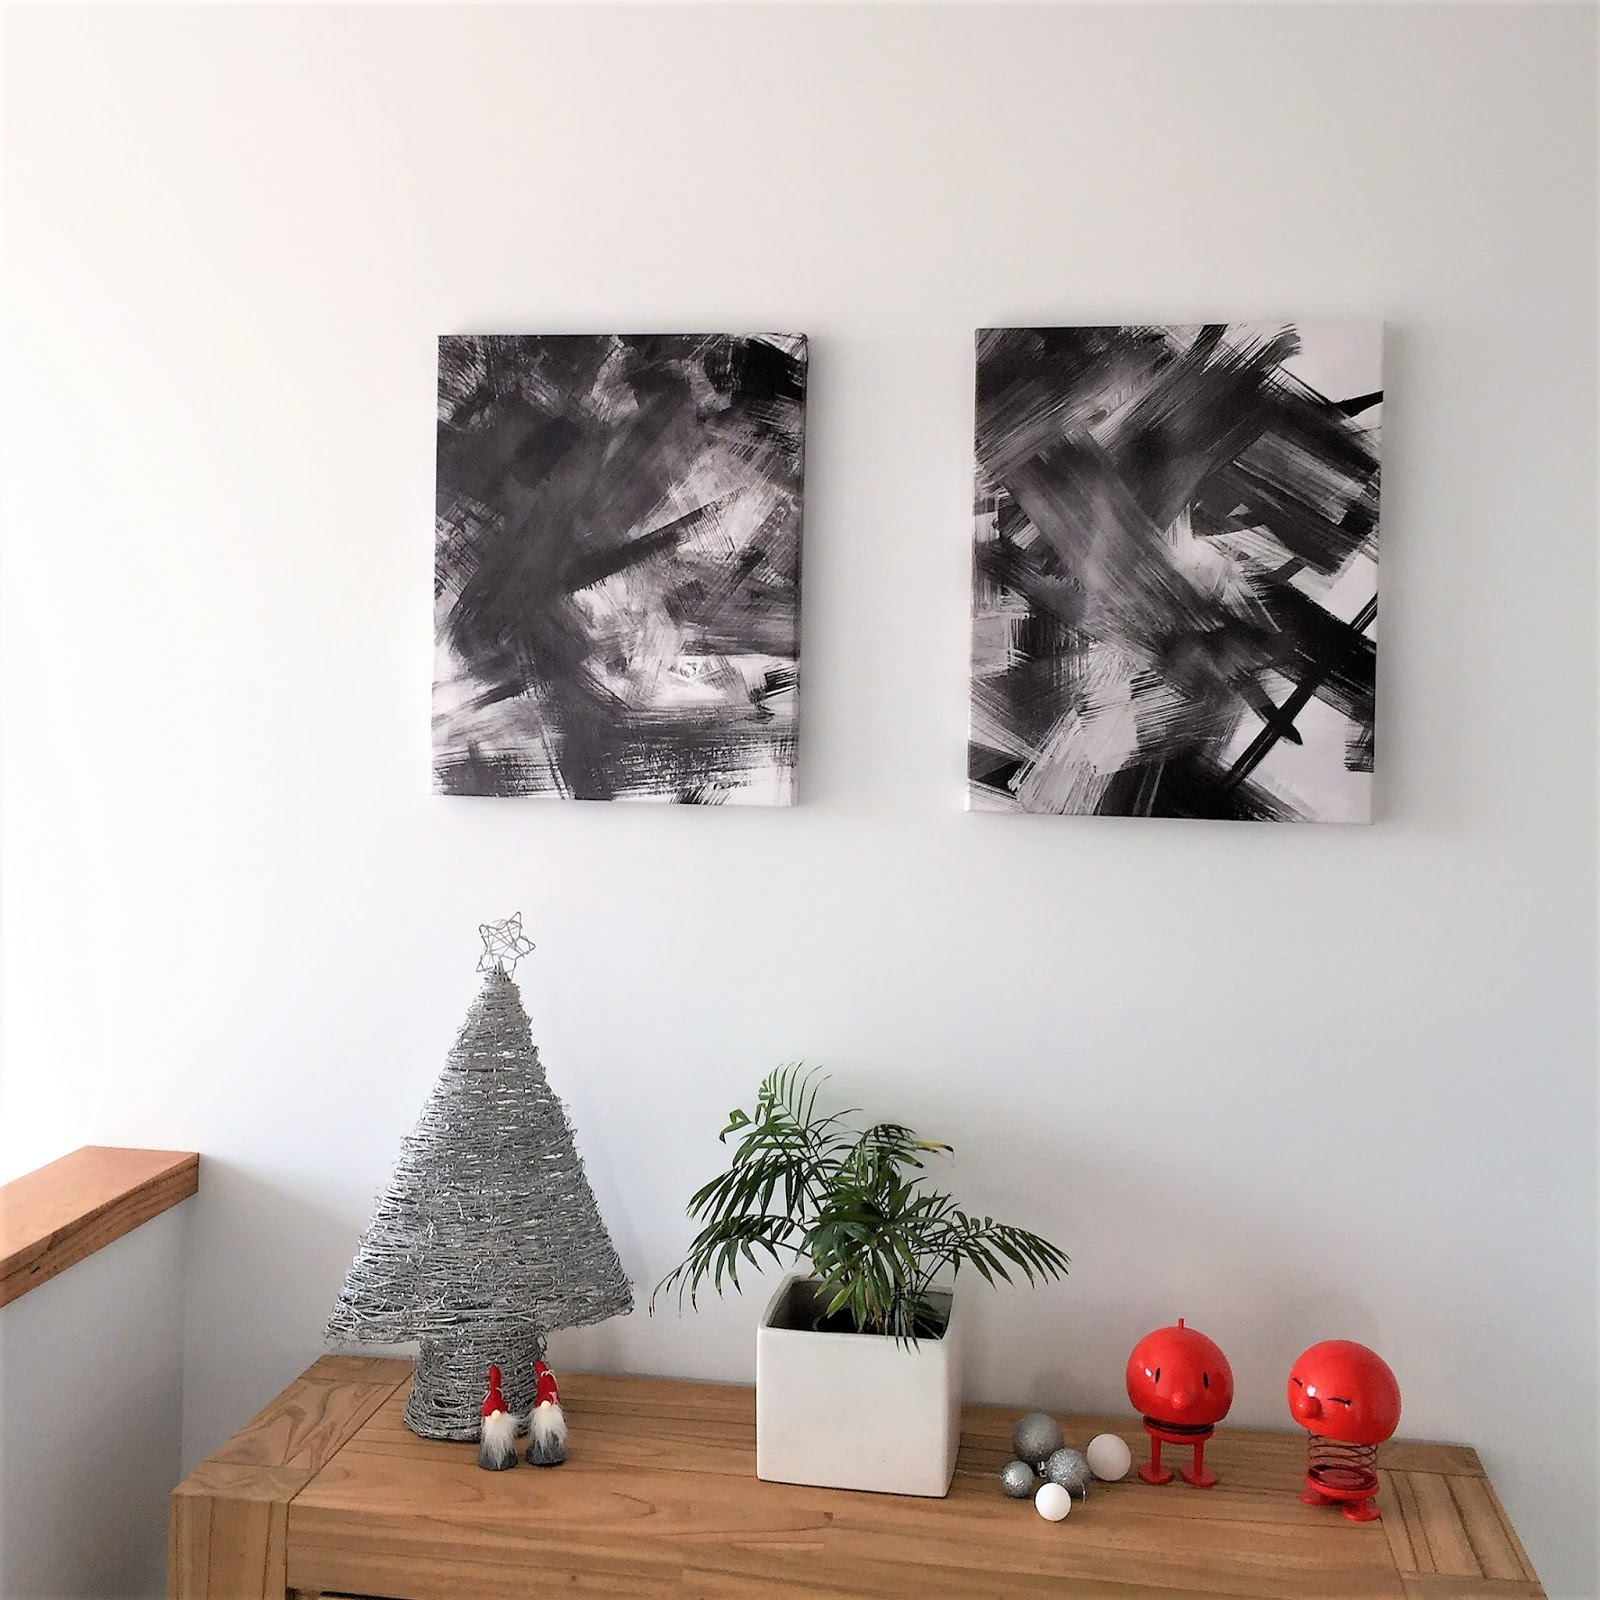 XMAS GIFT IDEAS FOR THE HOME DECORATOR FROM WALL ART PRINTS | The ...